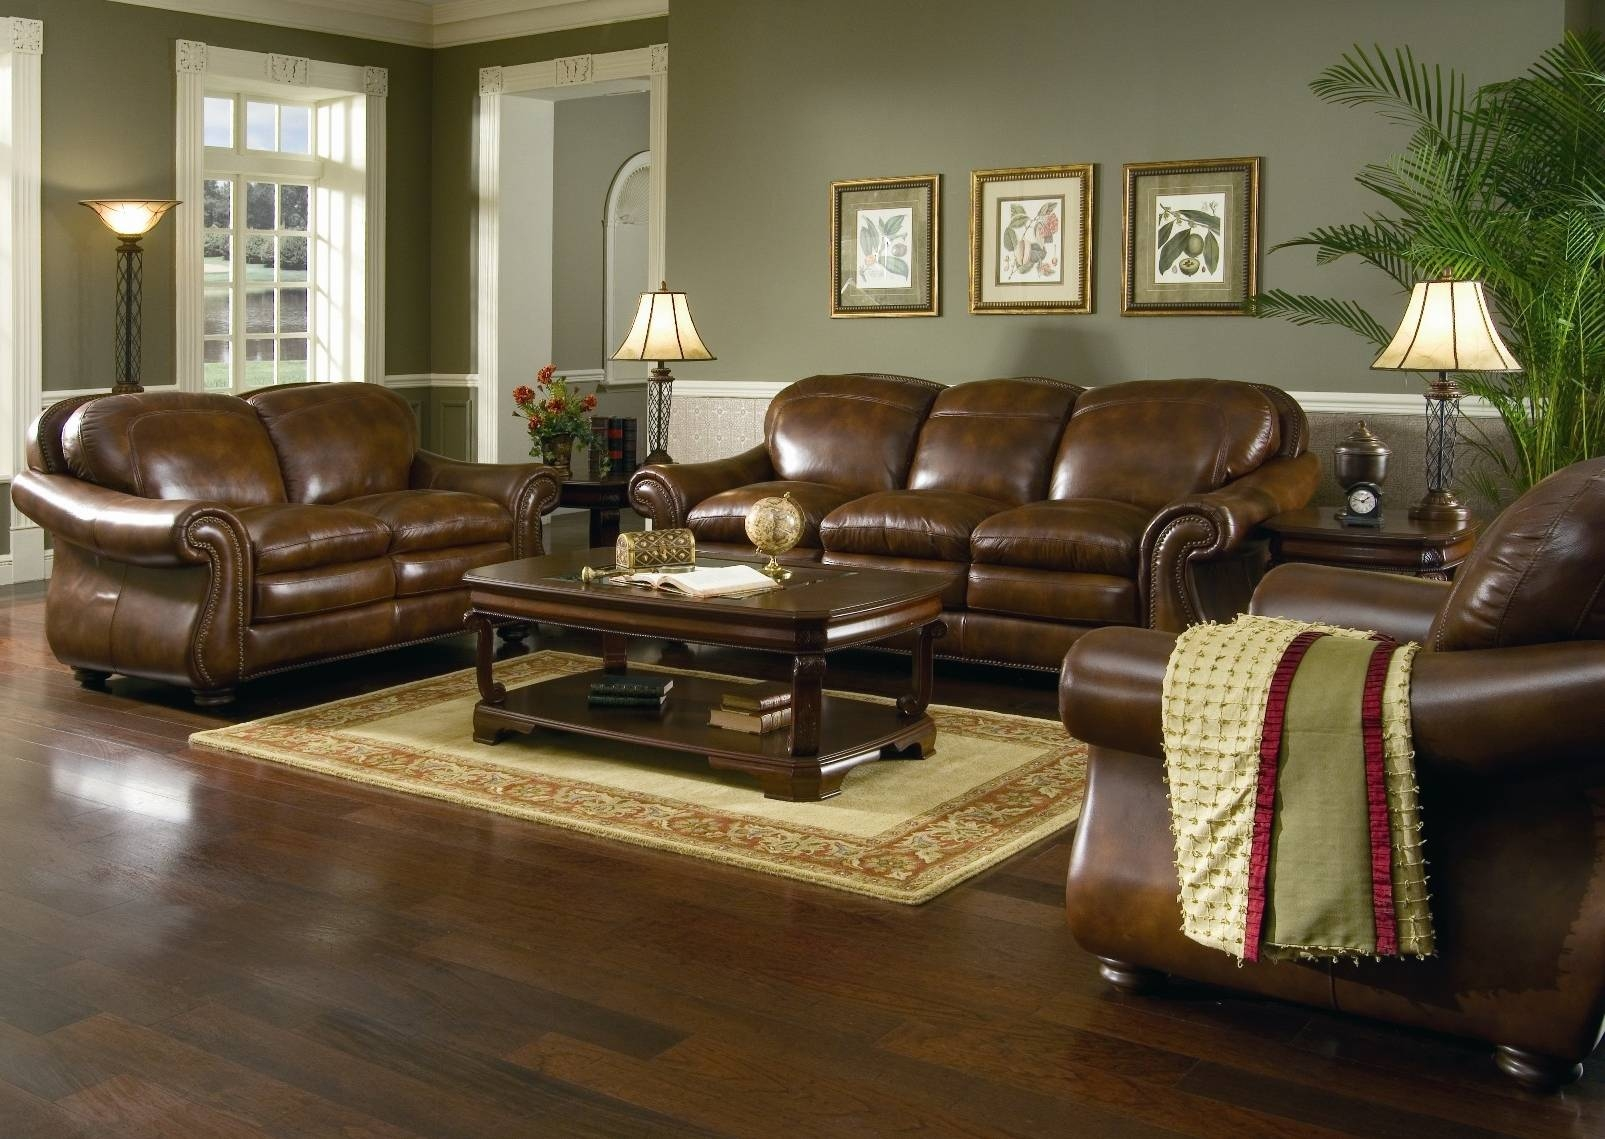 Living Room Paint With Brown Leather Furniture | Centerfieldbar within Living Room With Brown Sofas (Image 14 of 15)